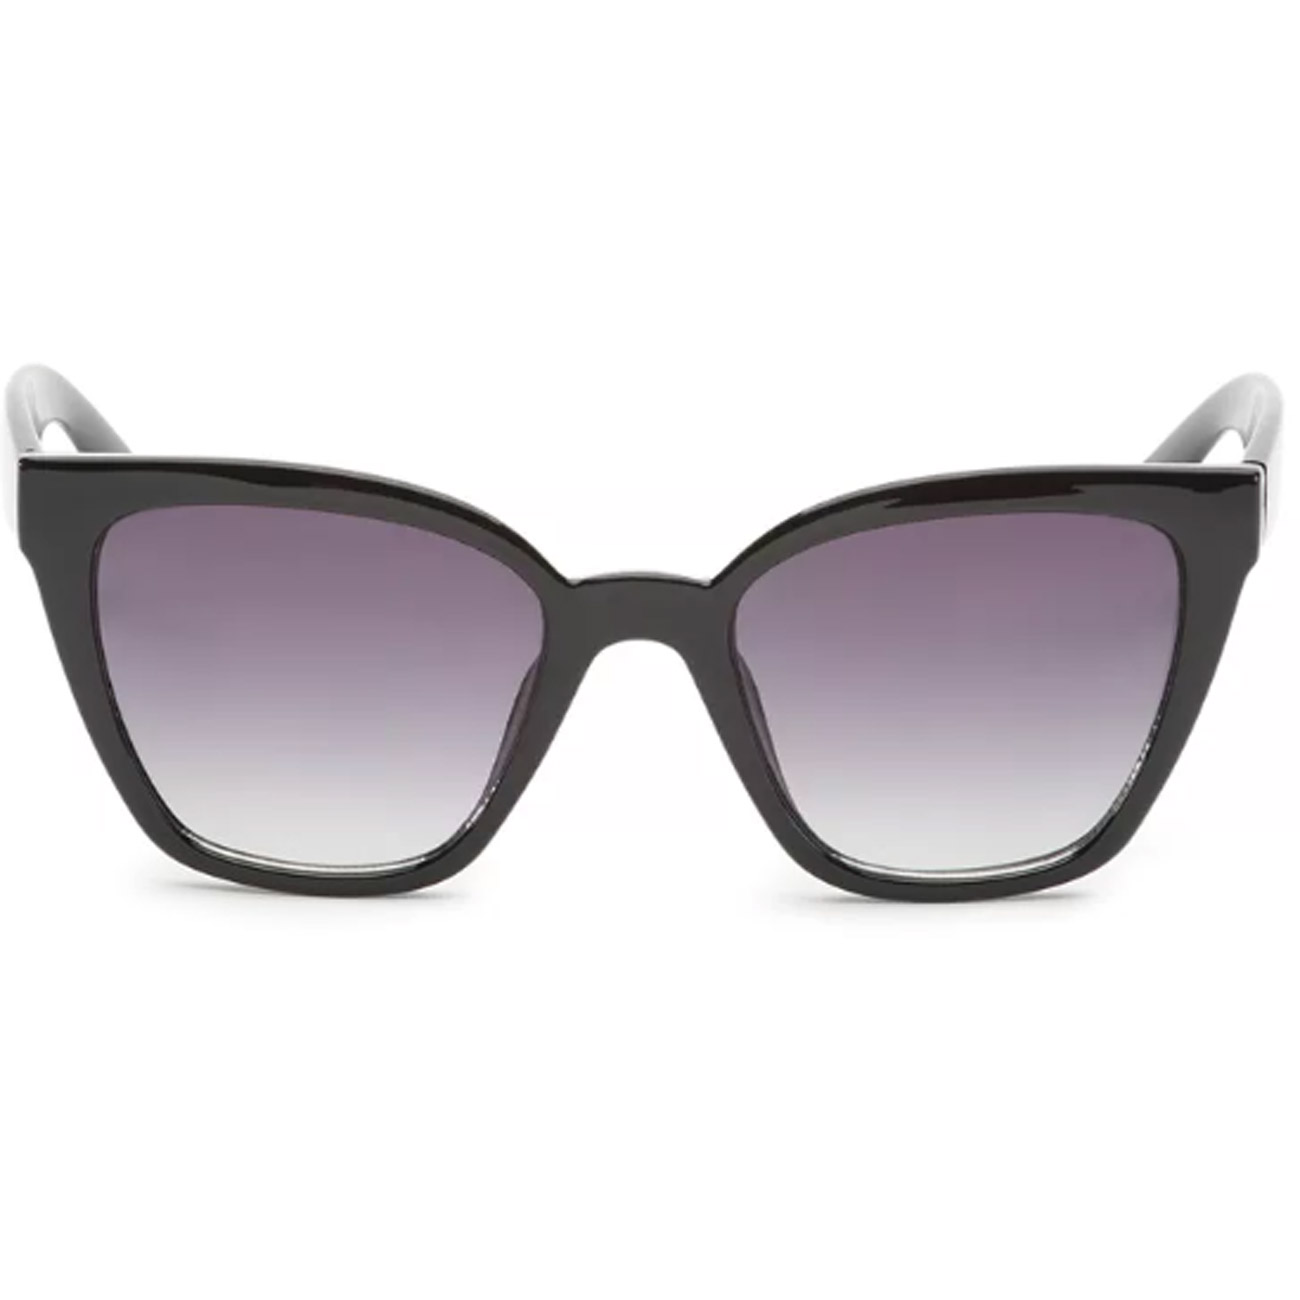 Vans Damen Sonnenbrille HIP CAT SUNGLASSES im Epoxy Shop